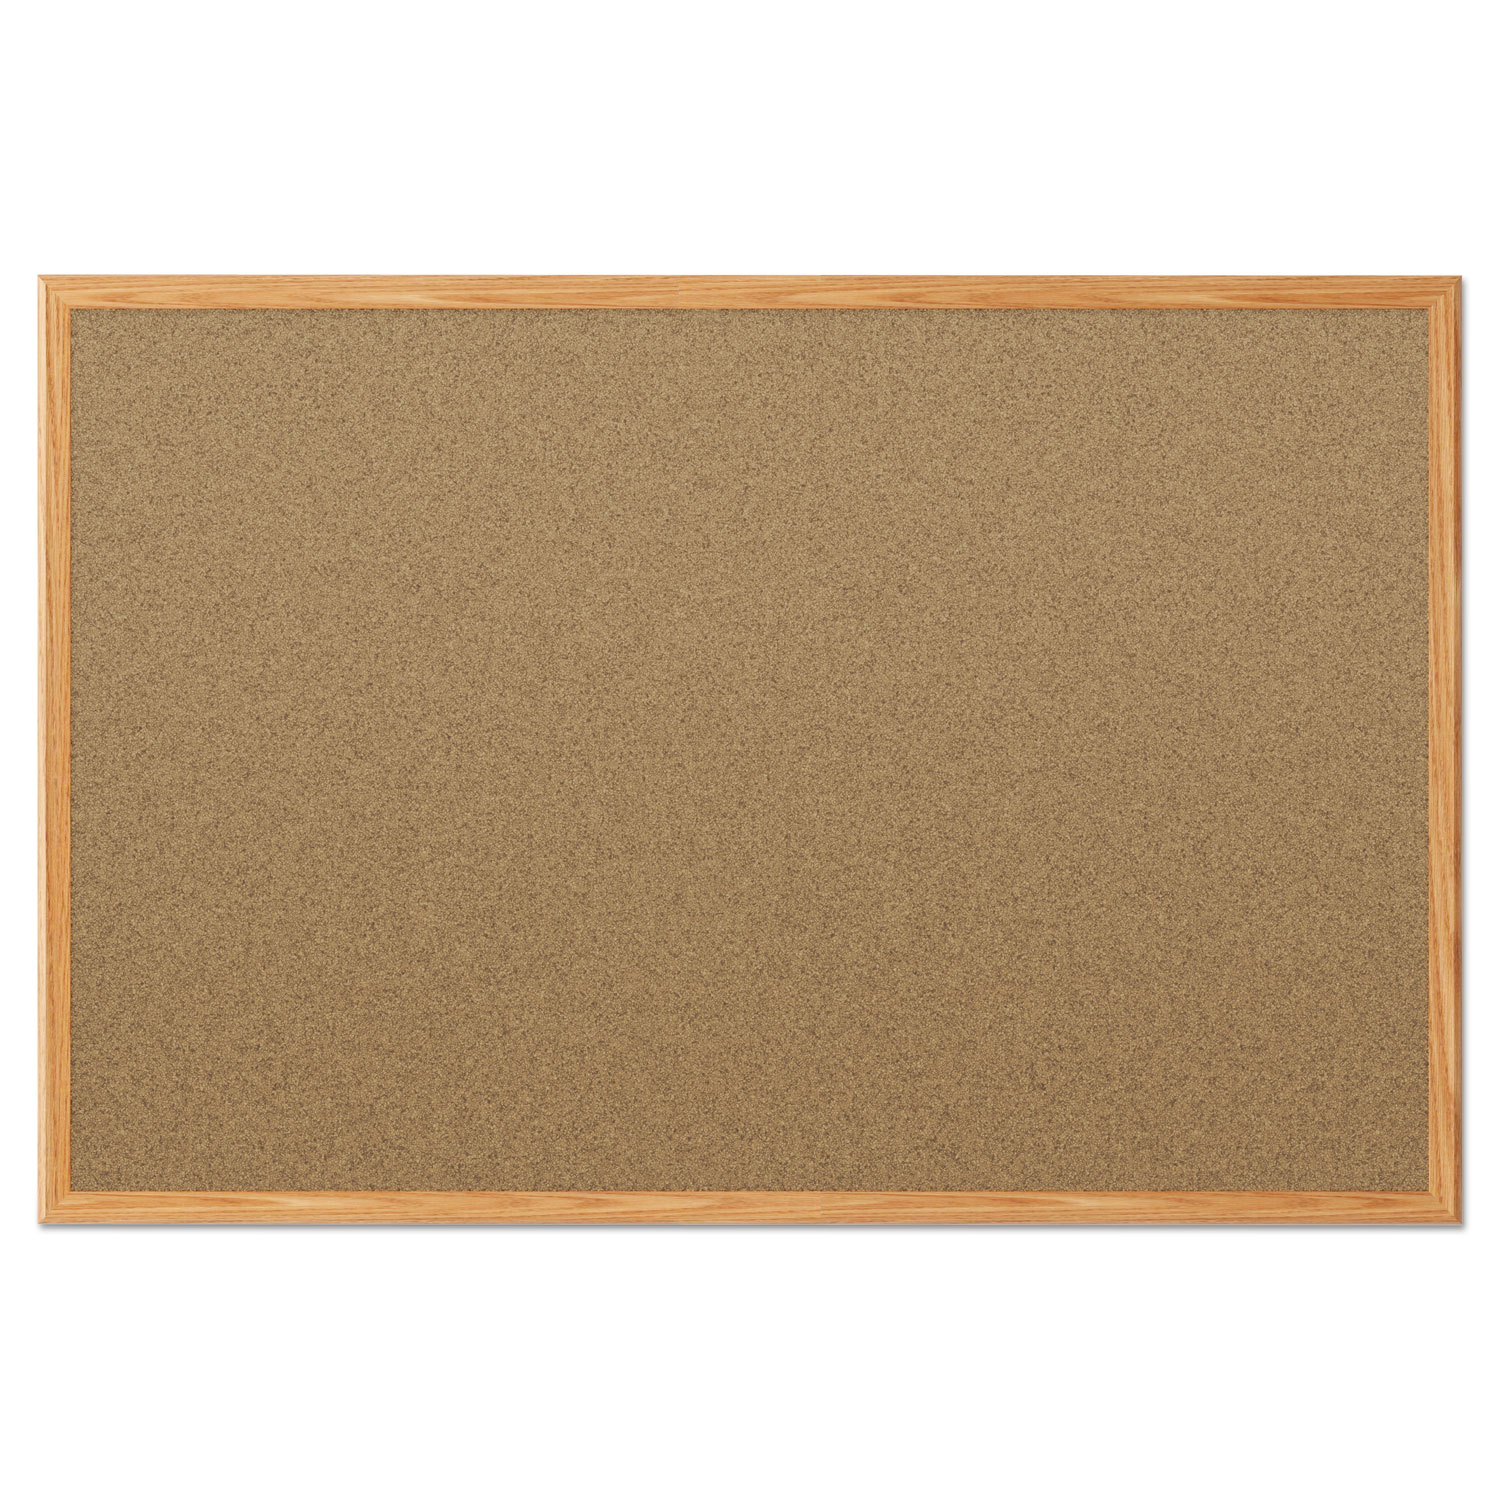 Cork Bulletin Board 48 X 36 Oak Frame Snap Supplies